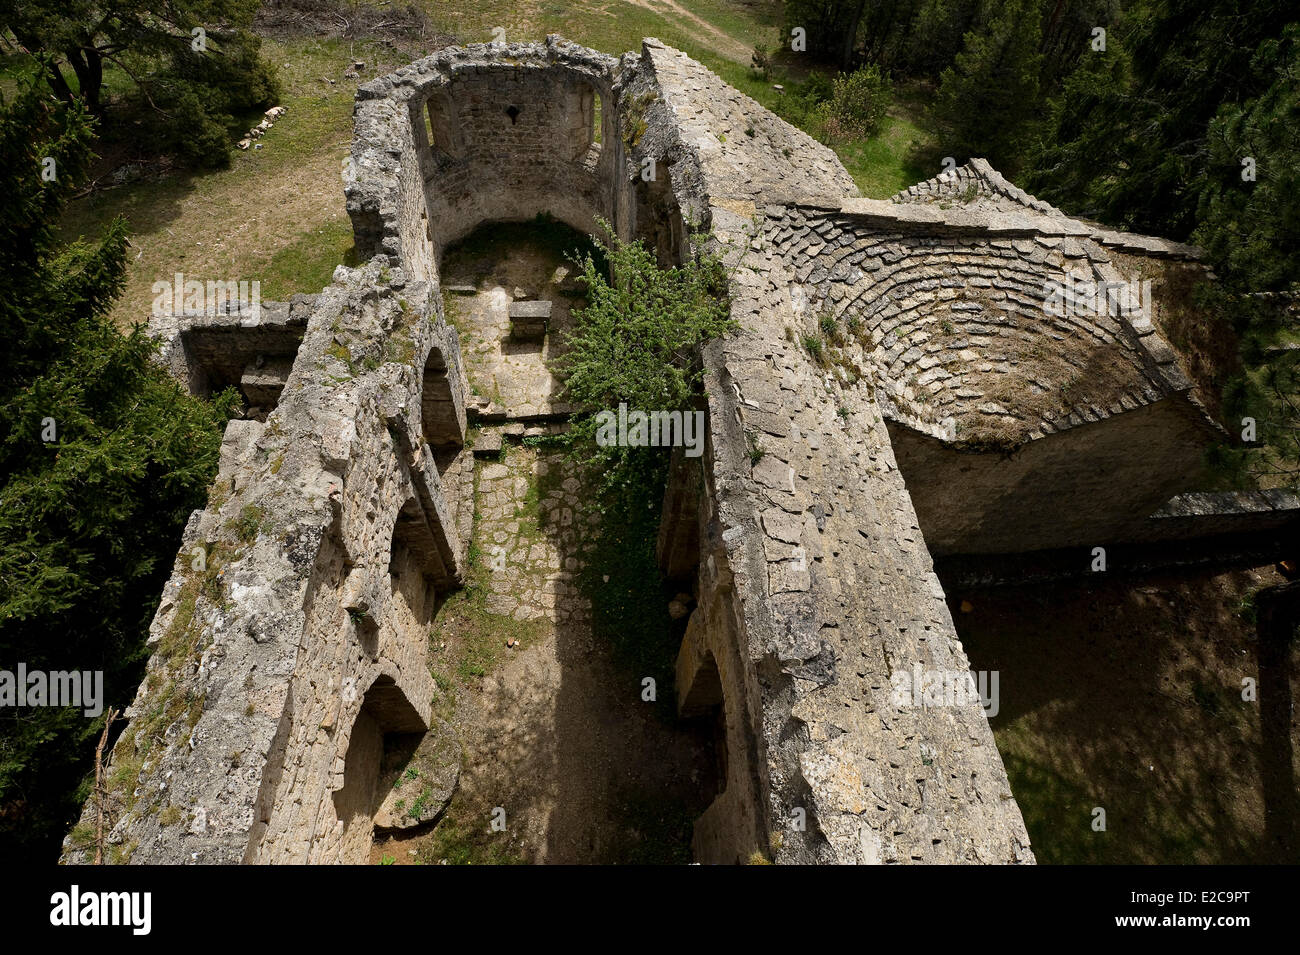 France, Aveyron, Veyreau, priory of Saint Jean des Balmes, the 12th-16th centuries, the Black Causse - Stock Image